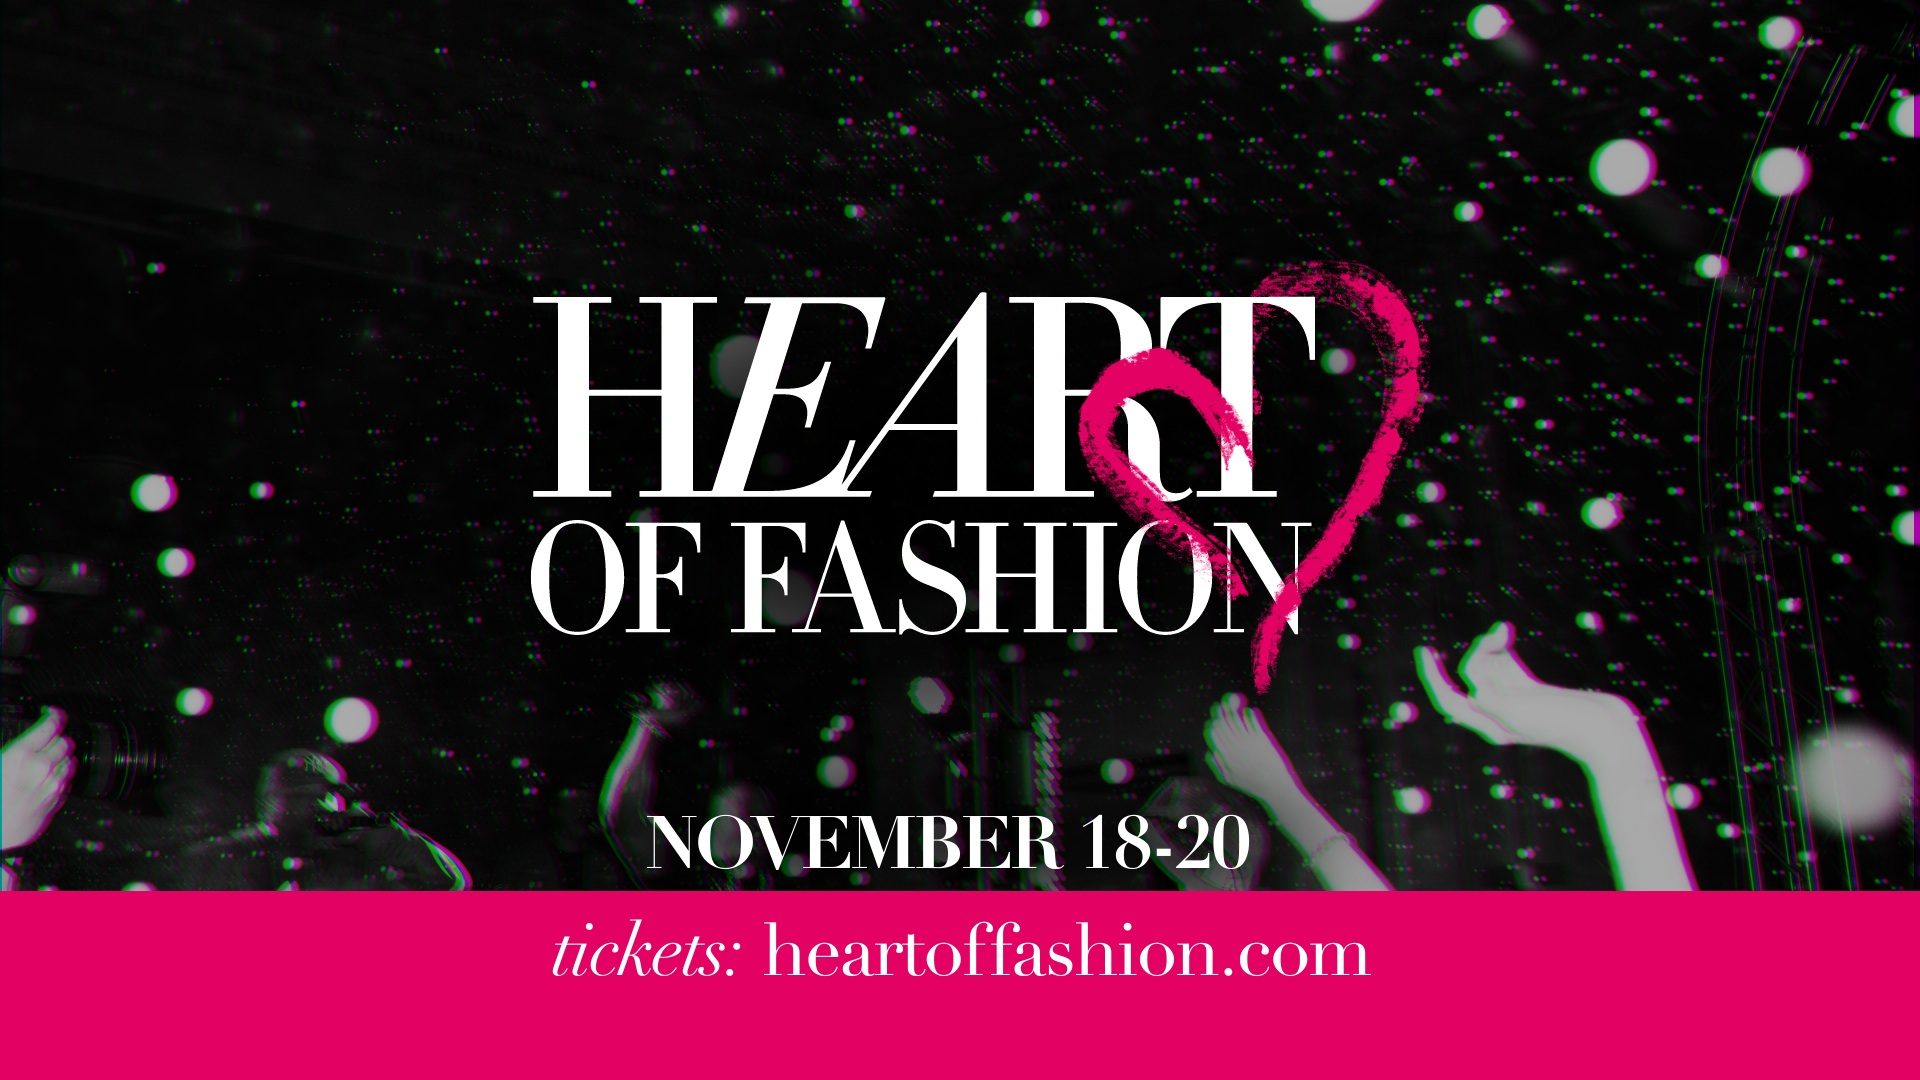 event advertisement video graphics | Heart of Fashion | jonberrydesign